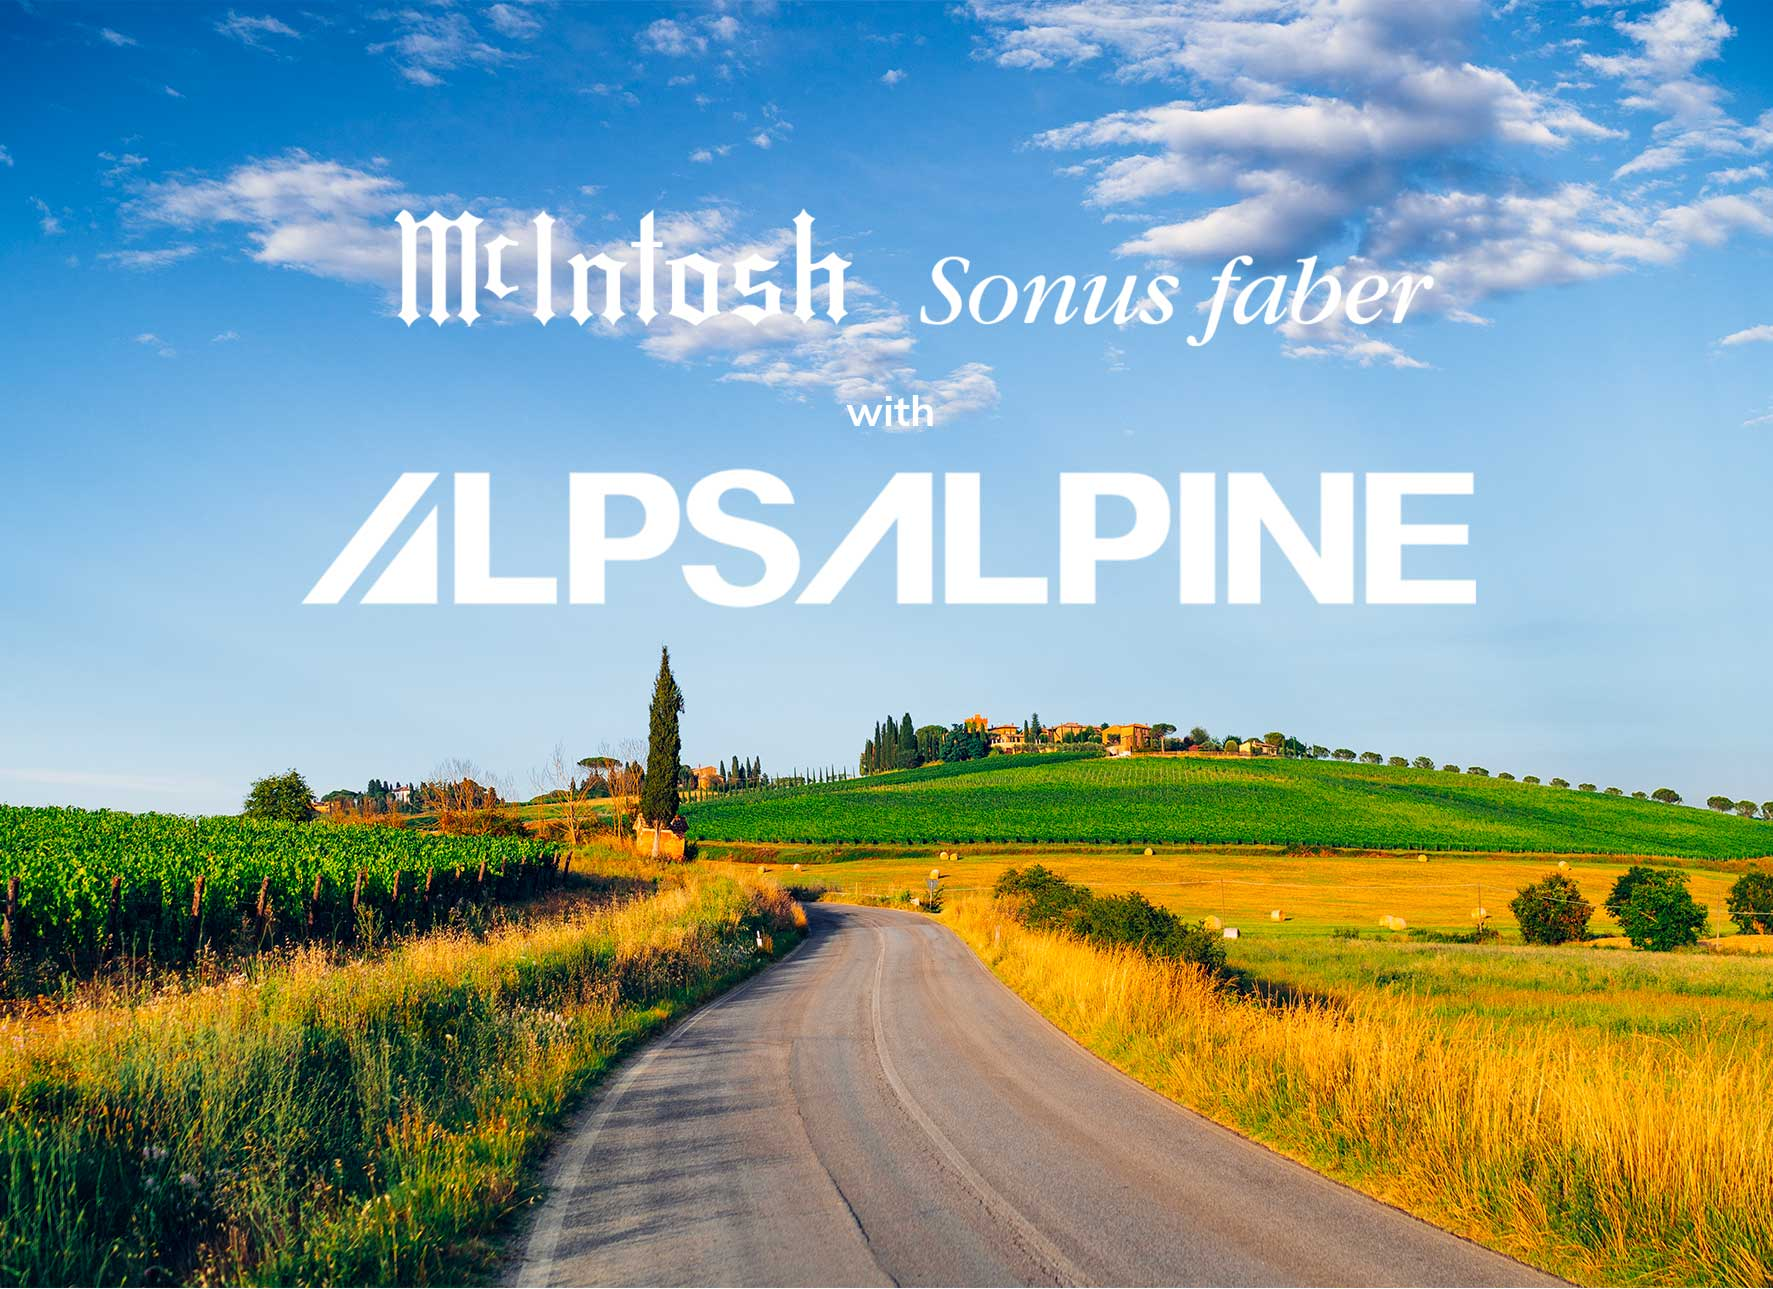 McIntosh & Sonus faber with Alps Alpine